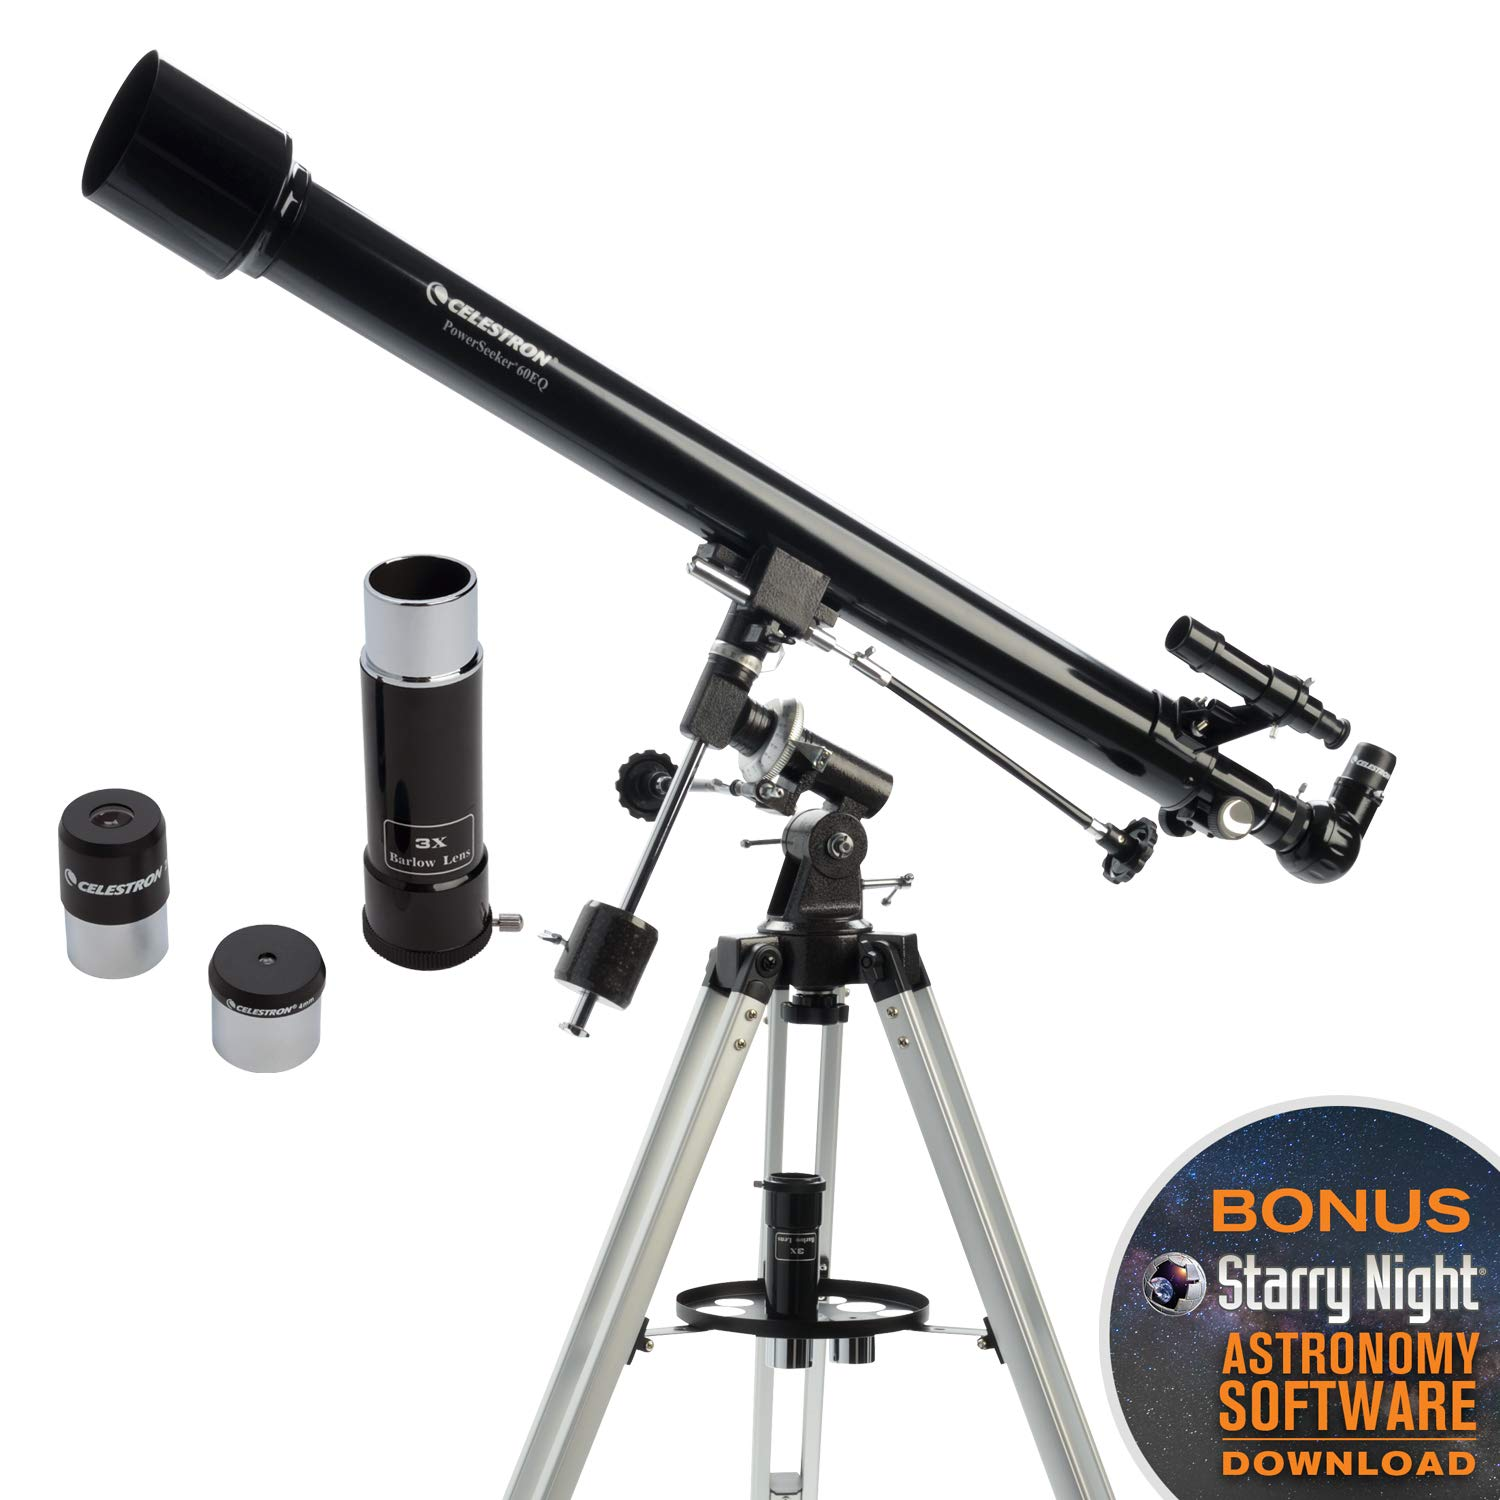 Celestron - PowerSeeker 60EQ Telescope - Manual German Equatorial Telescope for Beginners - Compact and Portable - BONUS Astronomy Software Package - 60mm Aperture by Celestron